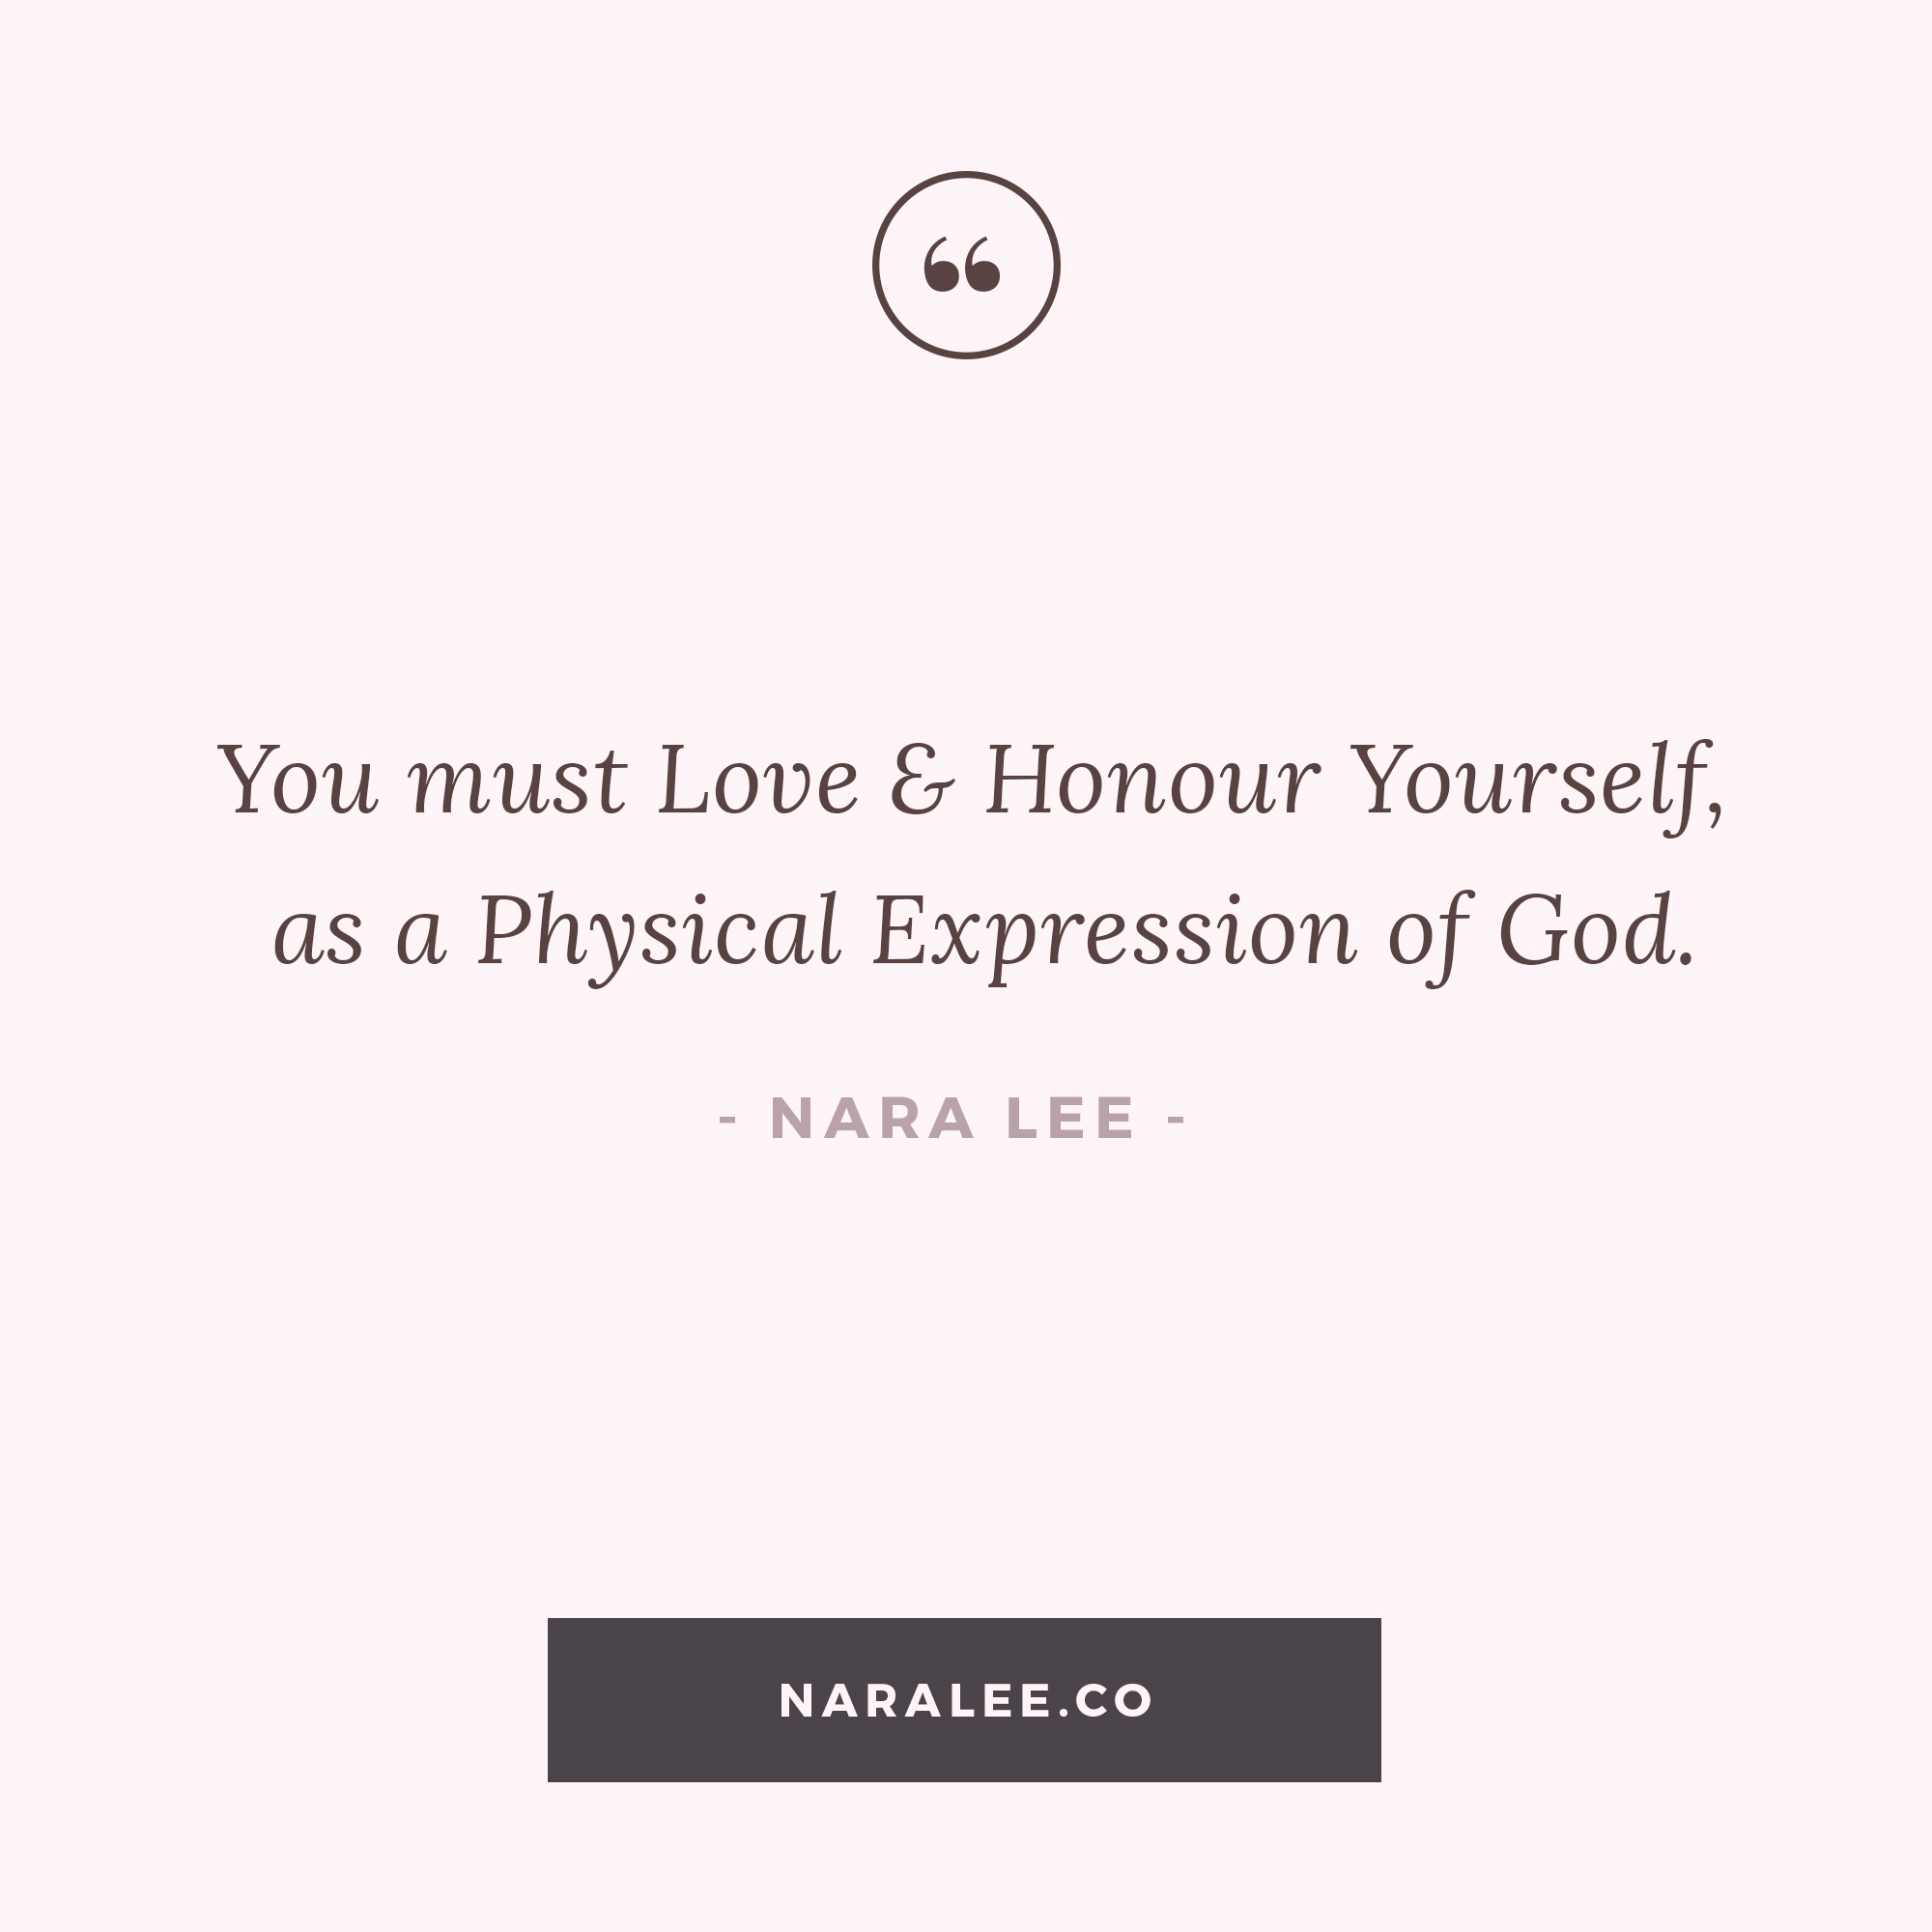 [Self-Love-Quotes] Love yourself as God - Nara Lee Self Love Quotes.jpg